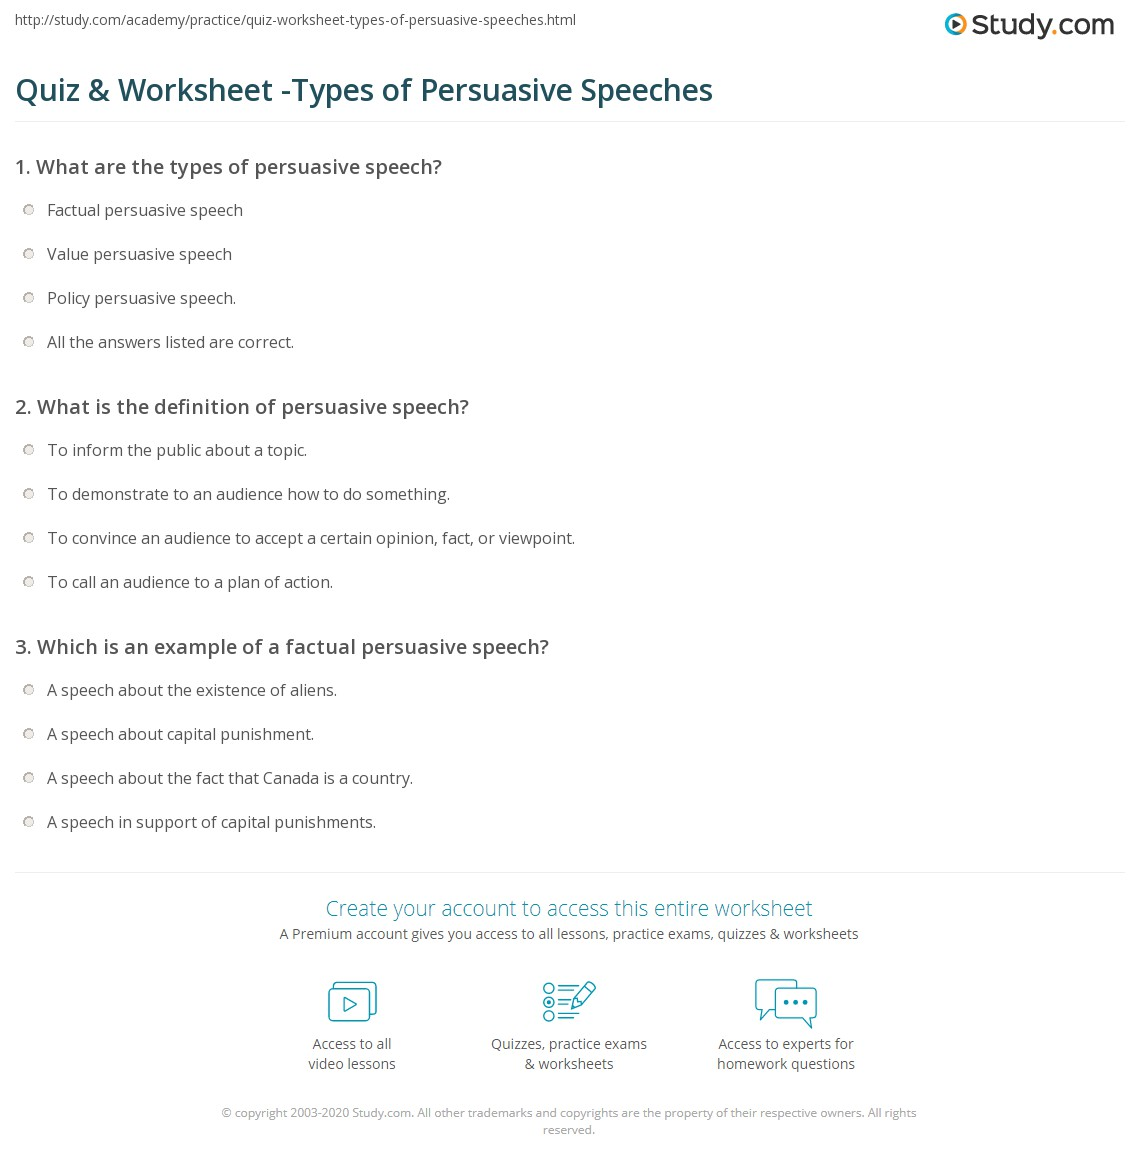 Preposition In Learn In Marathi All Complate: Quiz & Worksheet -Types Of Persuasive Speeches